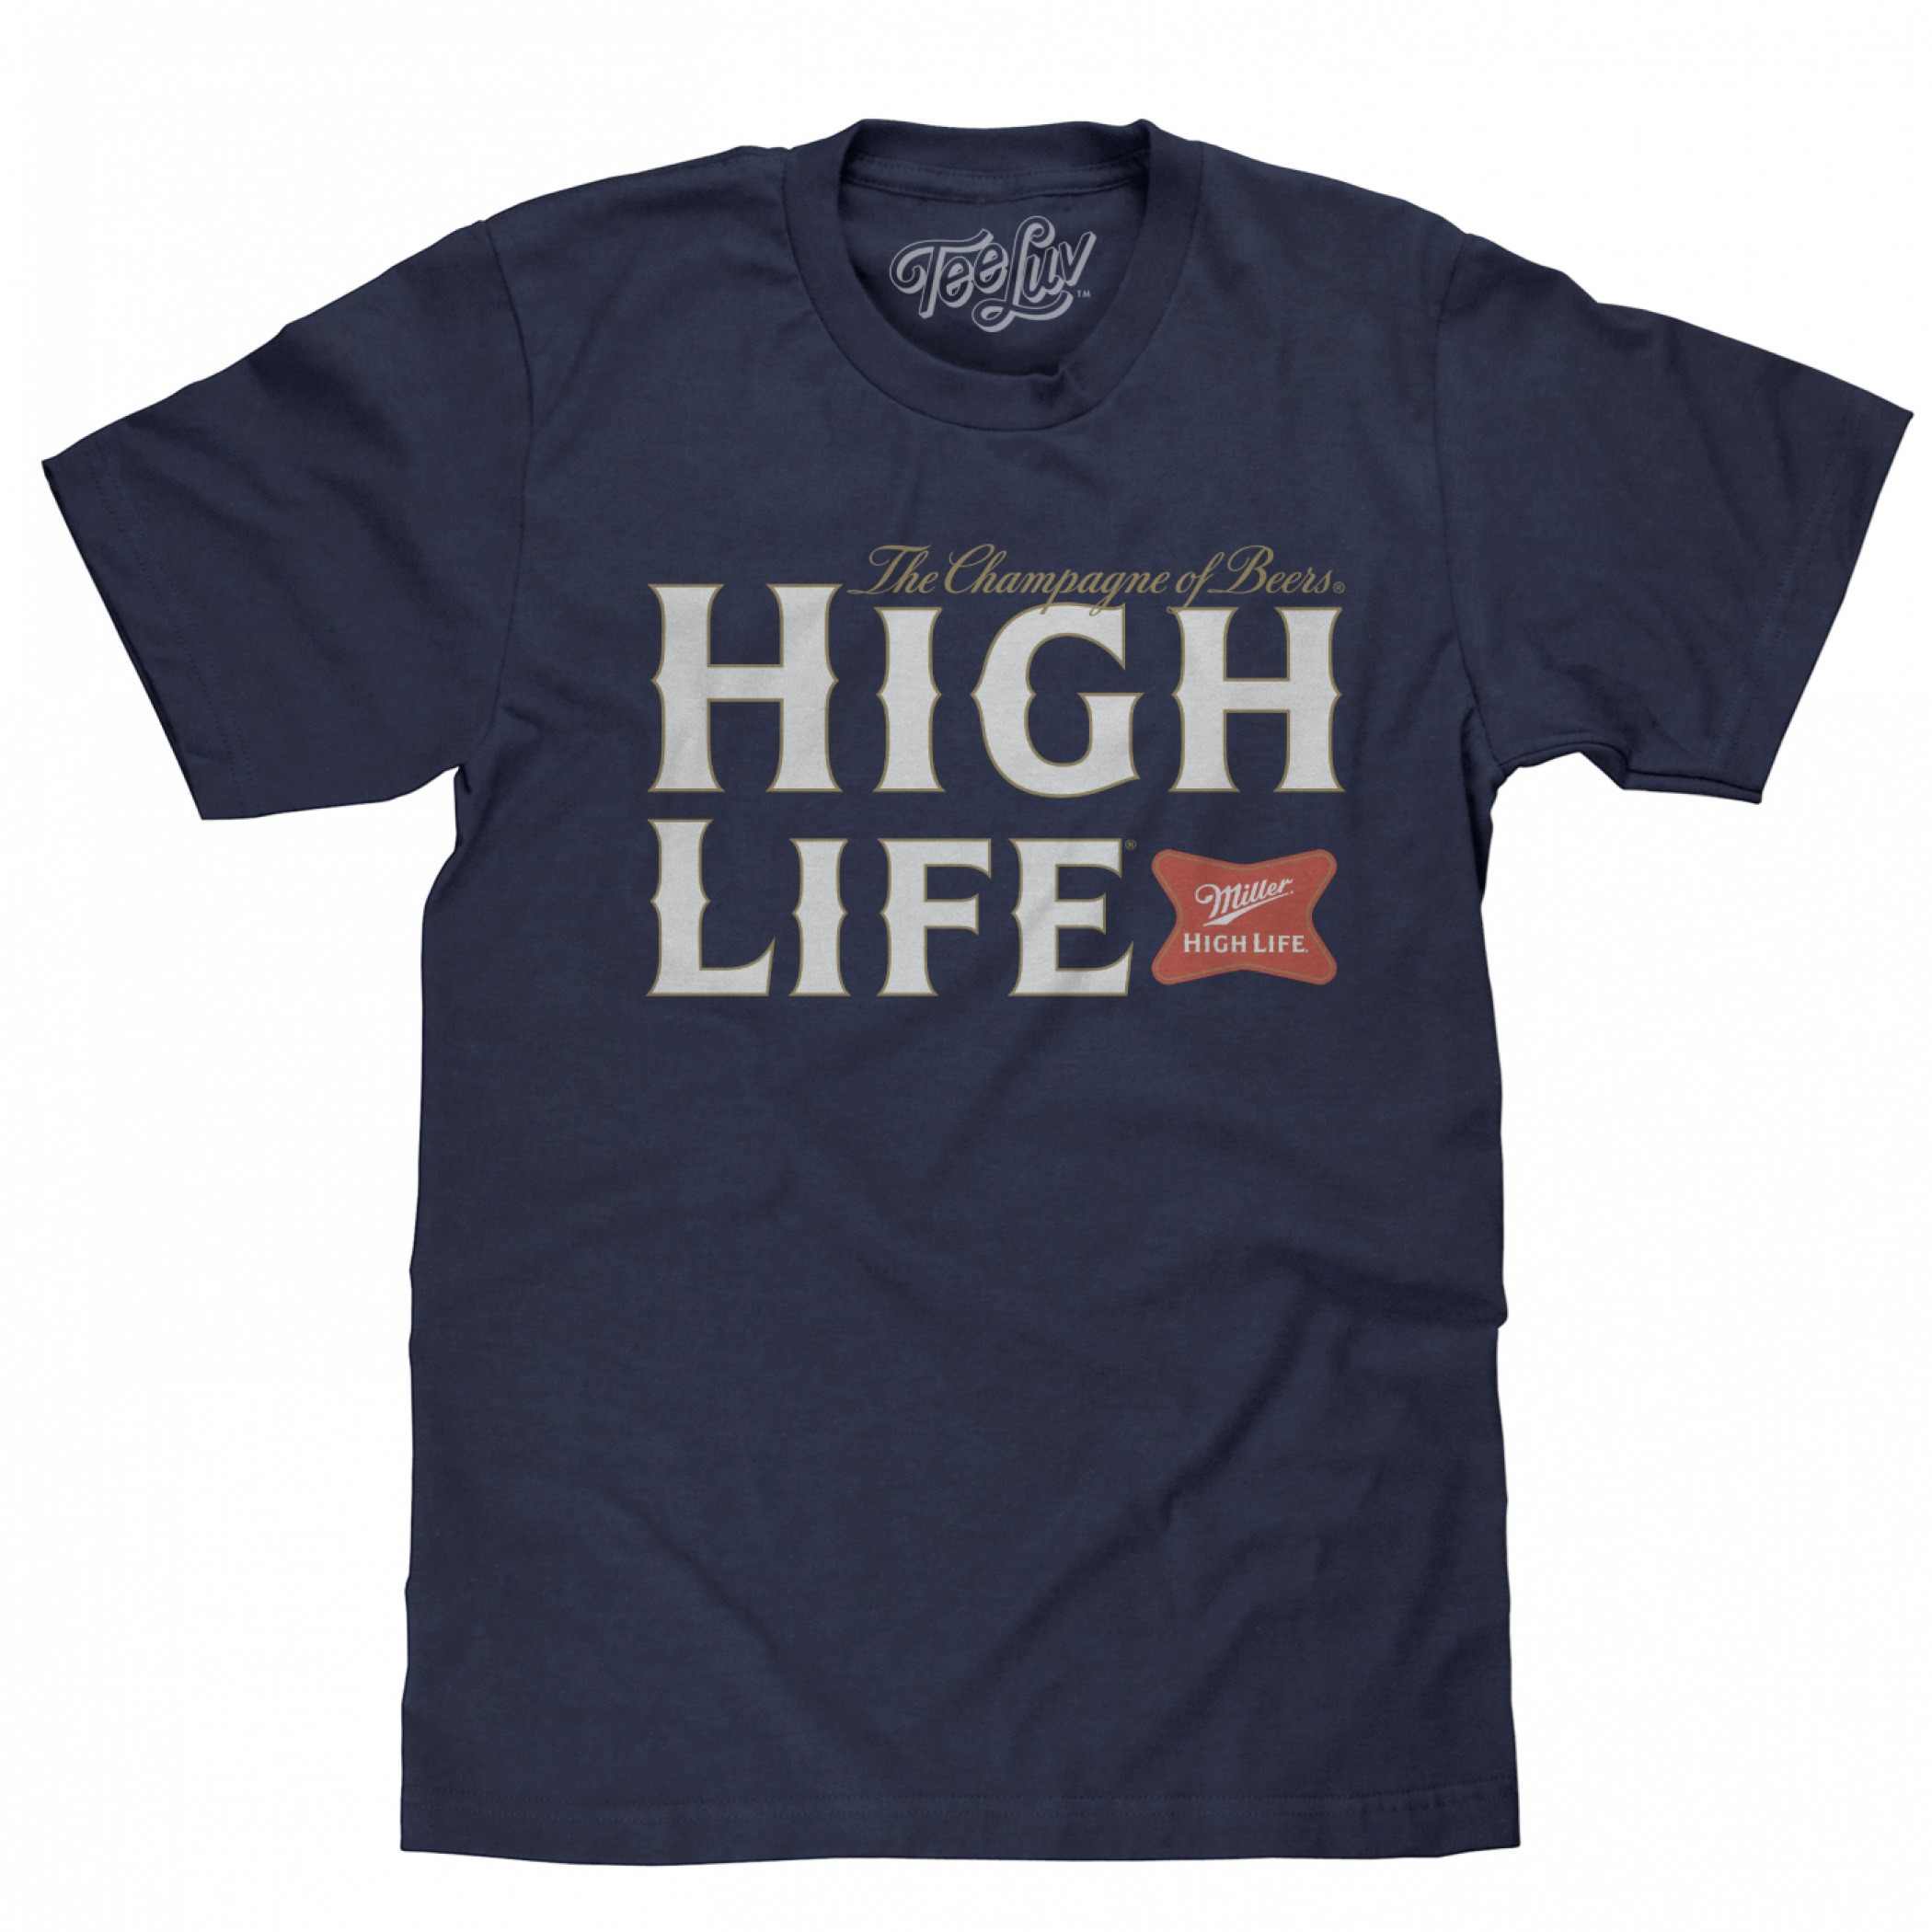 Miller High Life The Champion of Beers T-Shirt